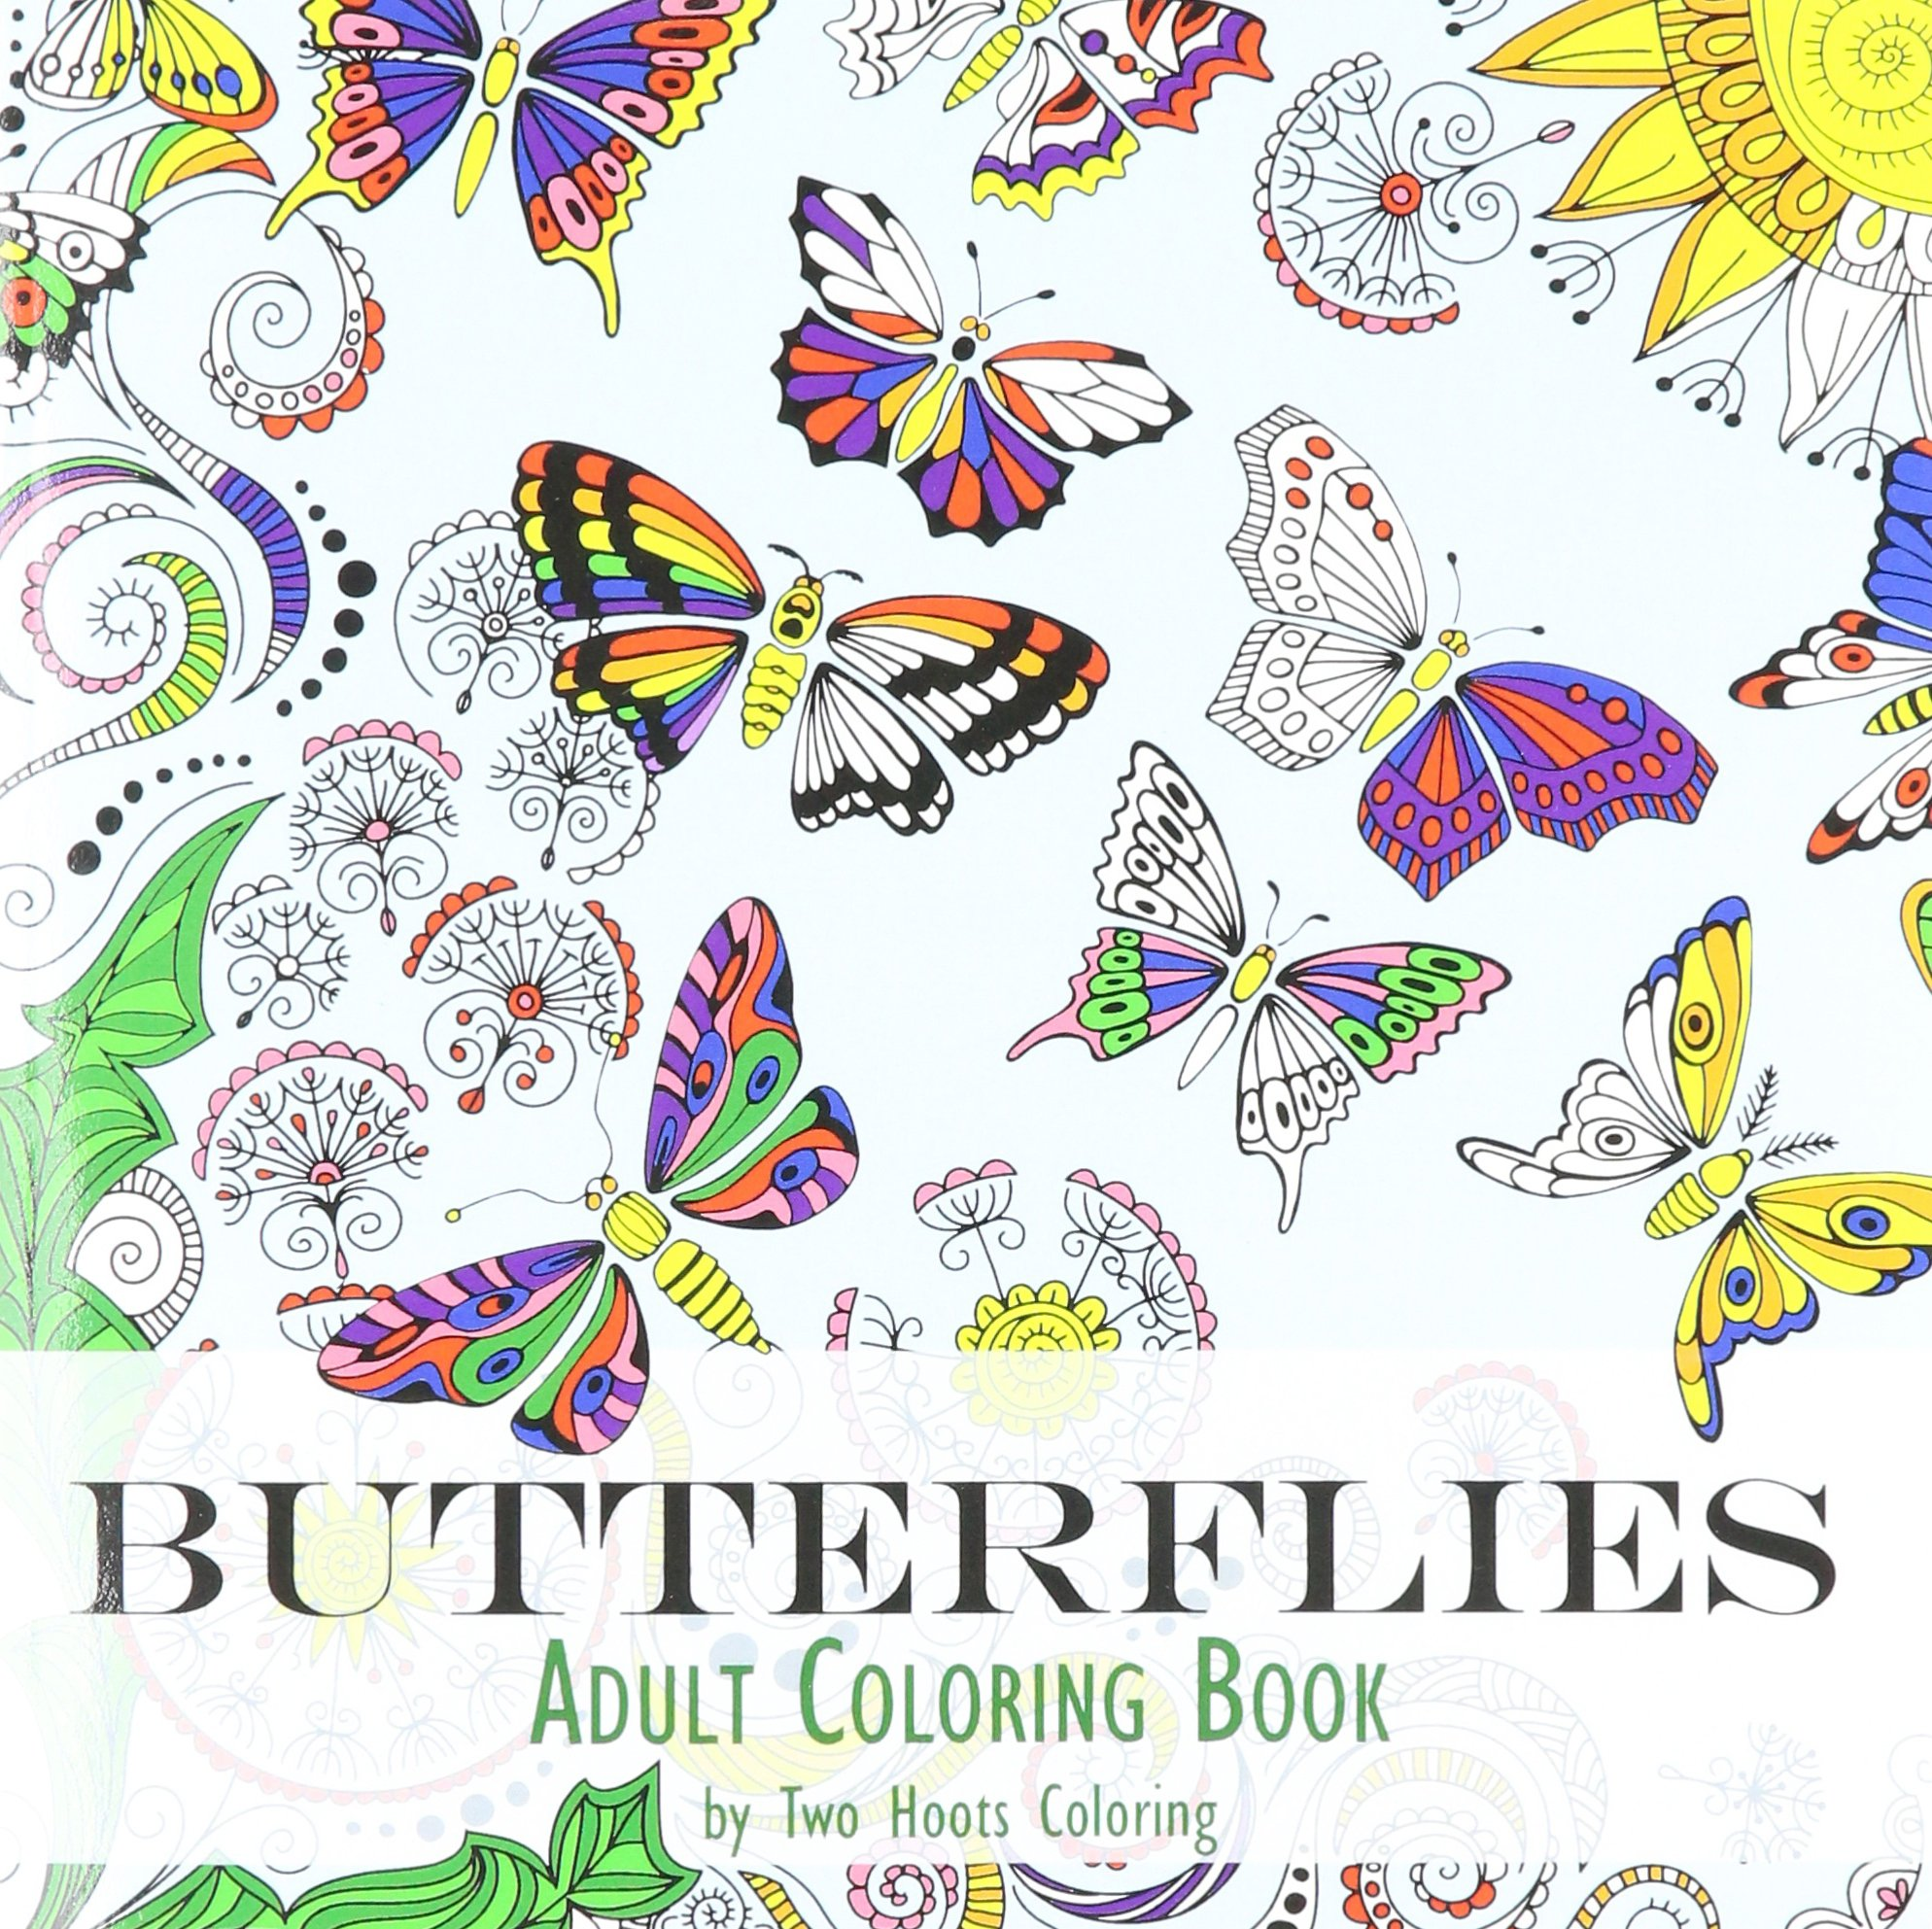 Adult Coloring Book: Butterflies: Two Hoots Coloring: 9780692603789 ...